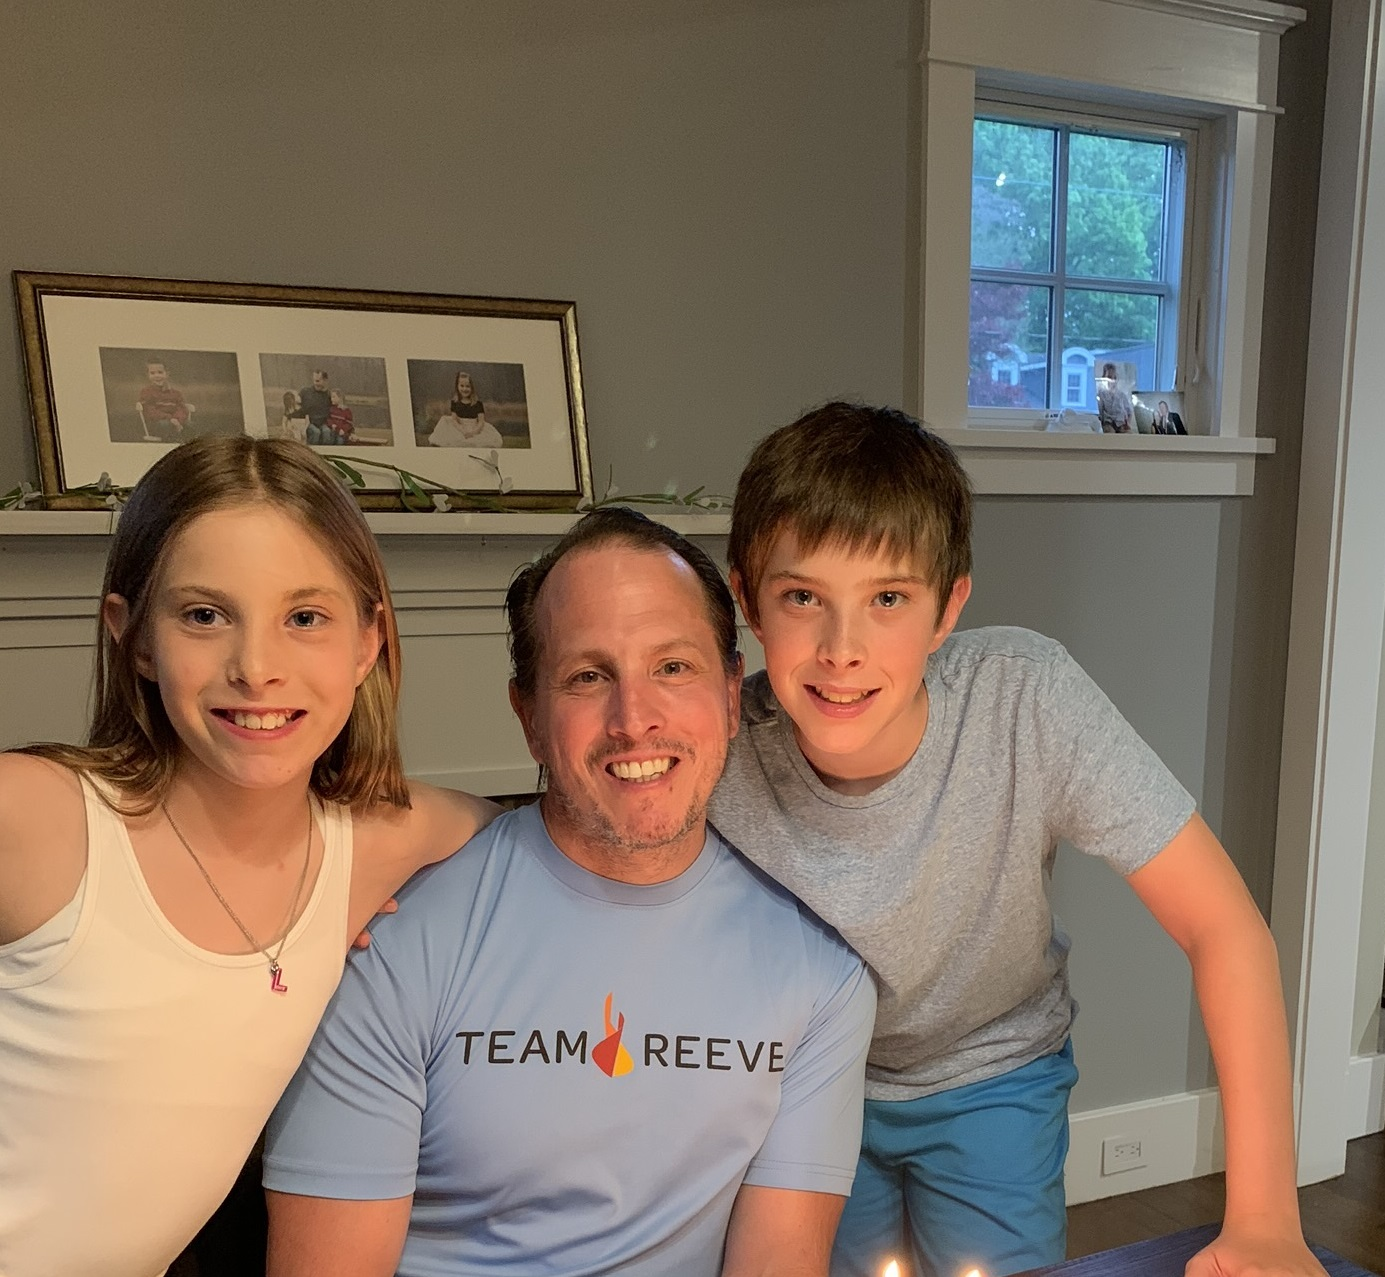 Dennis wearing a Team Reeve tshirt with his children